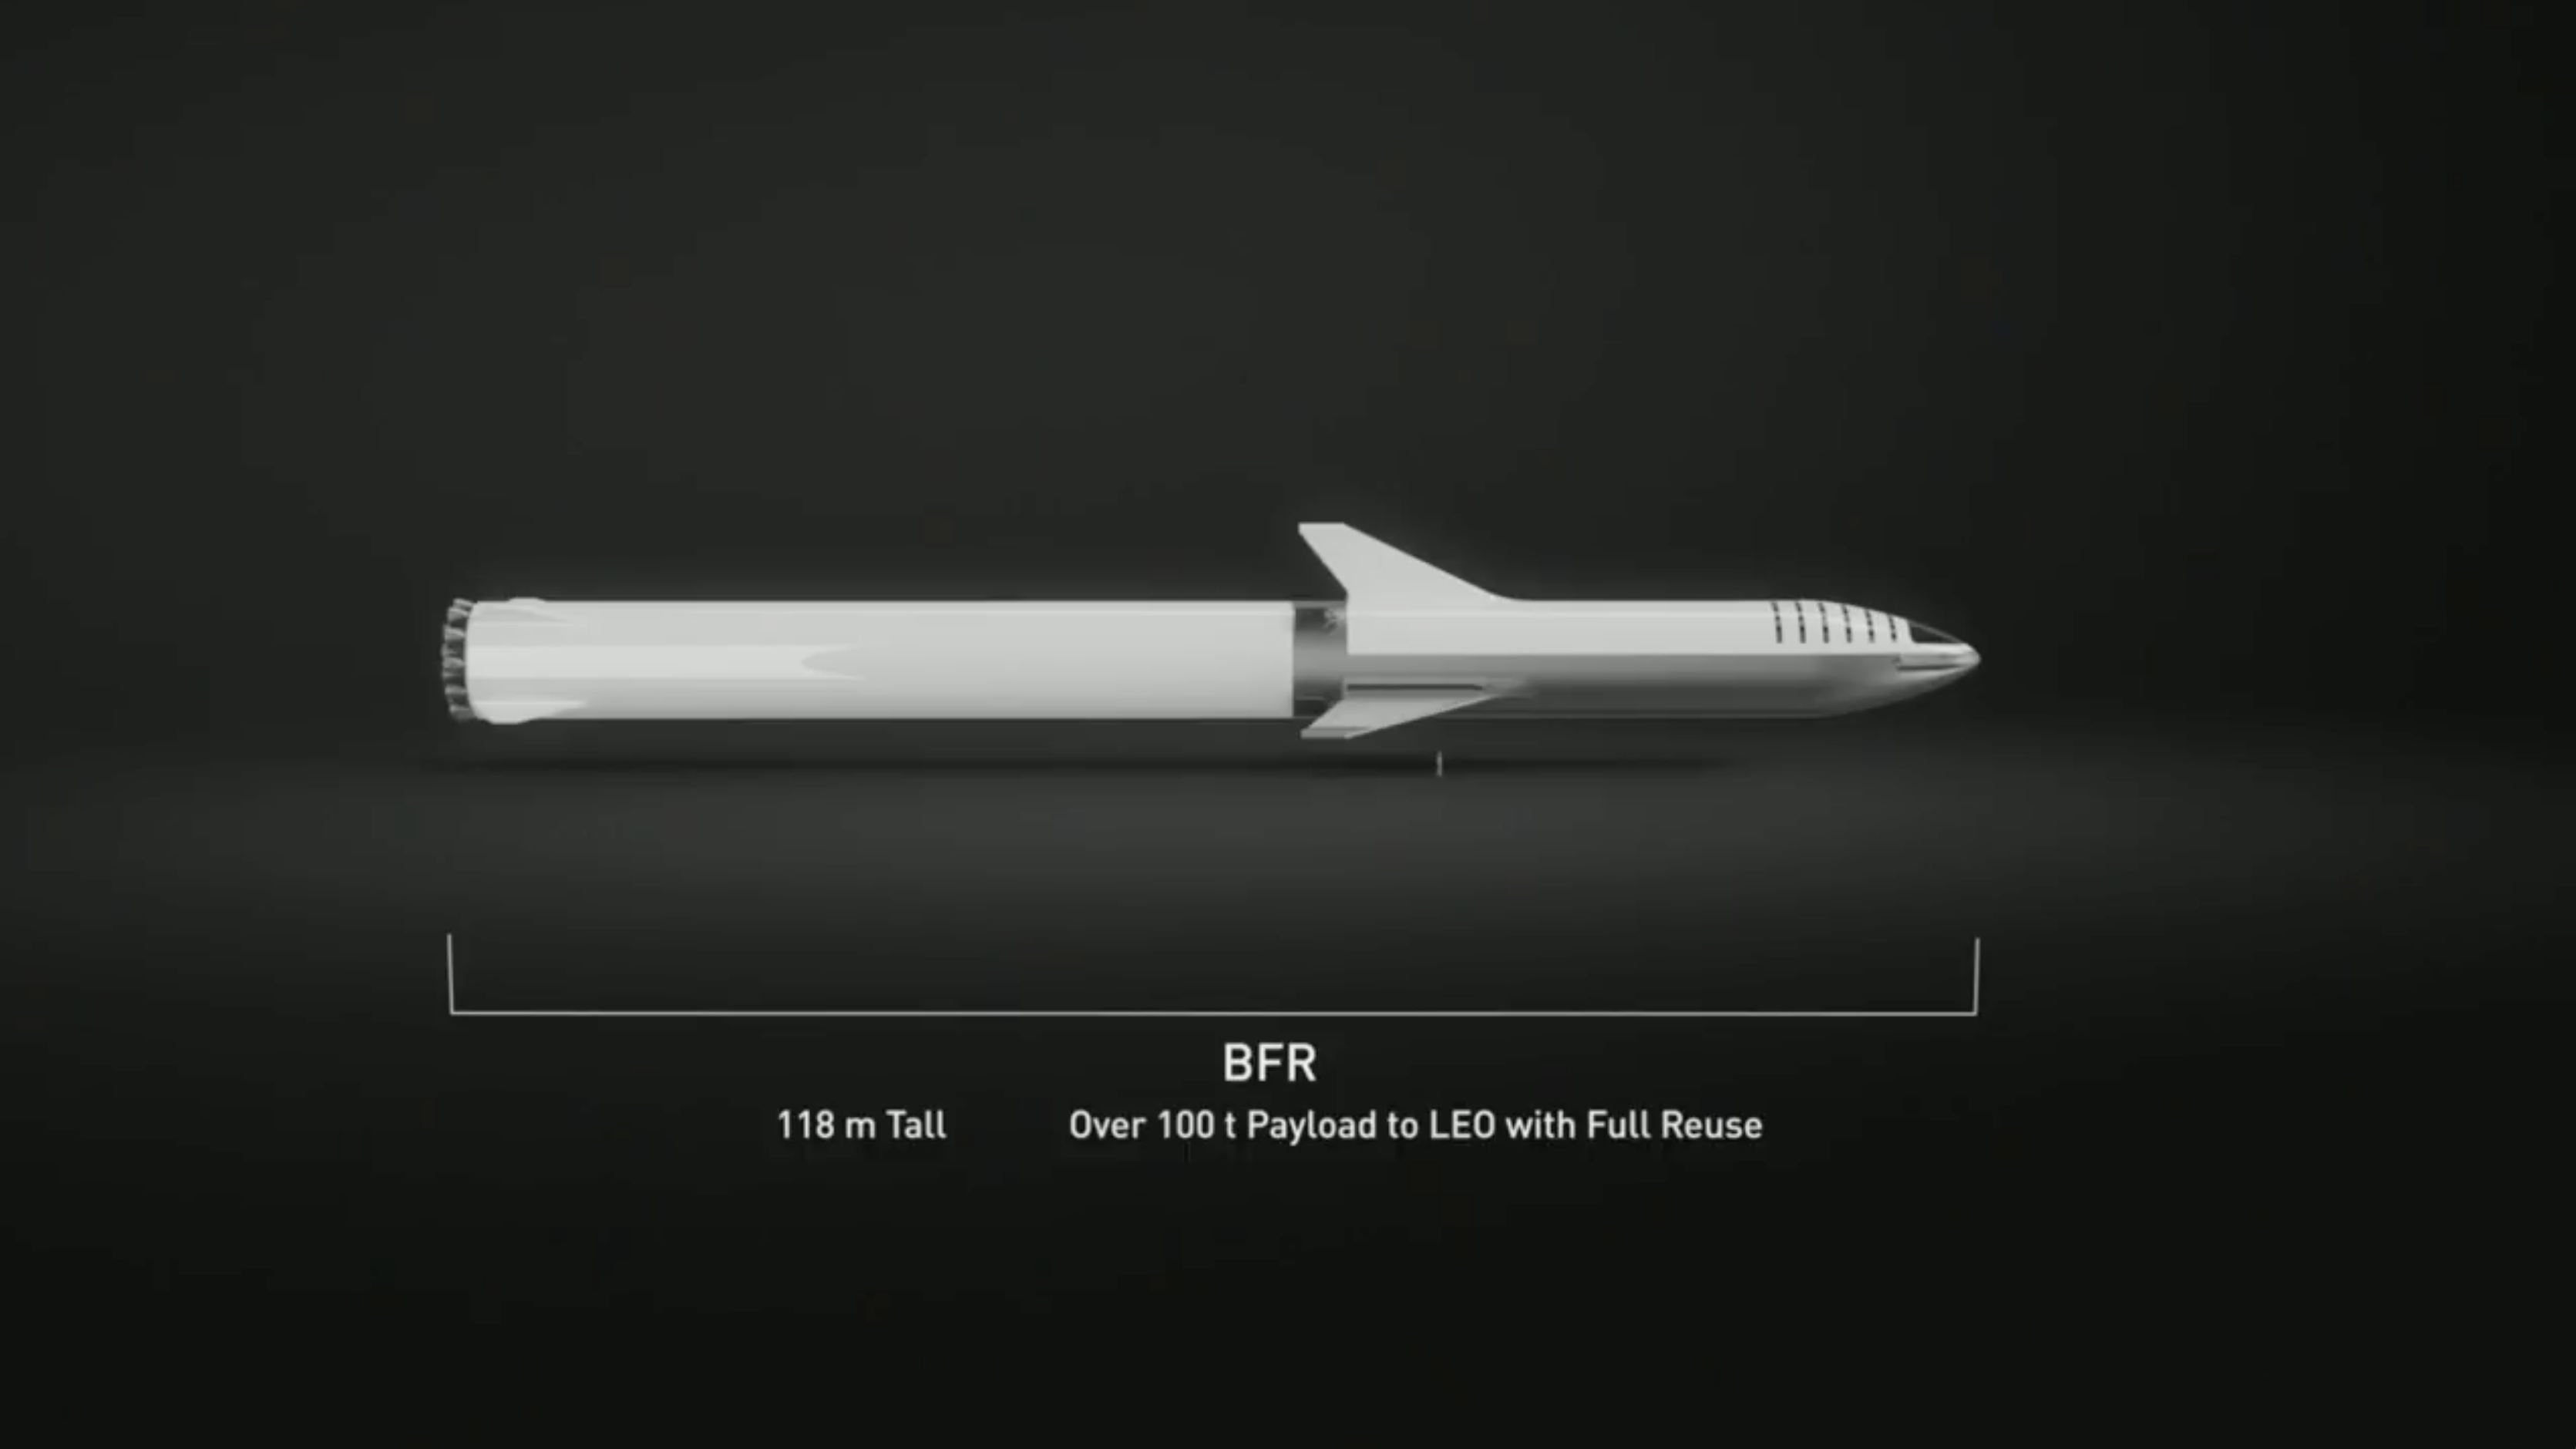 Renderings and specifications for SpaceX's upcoming Big Falcon Rocket and Big Falcon Spaceship, which were unveiled in September 2018.